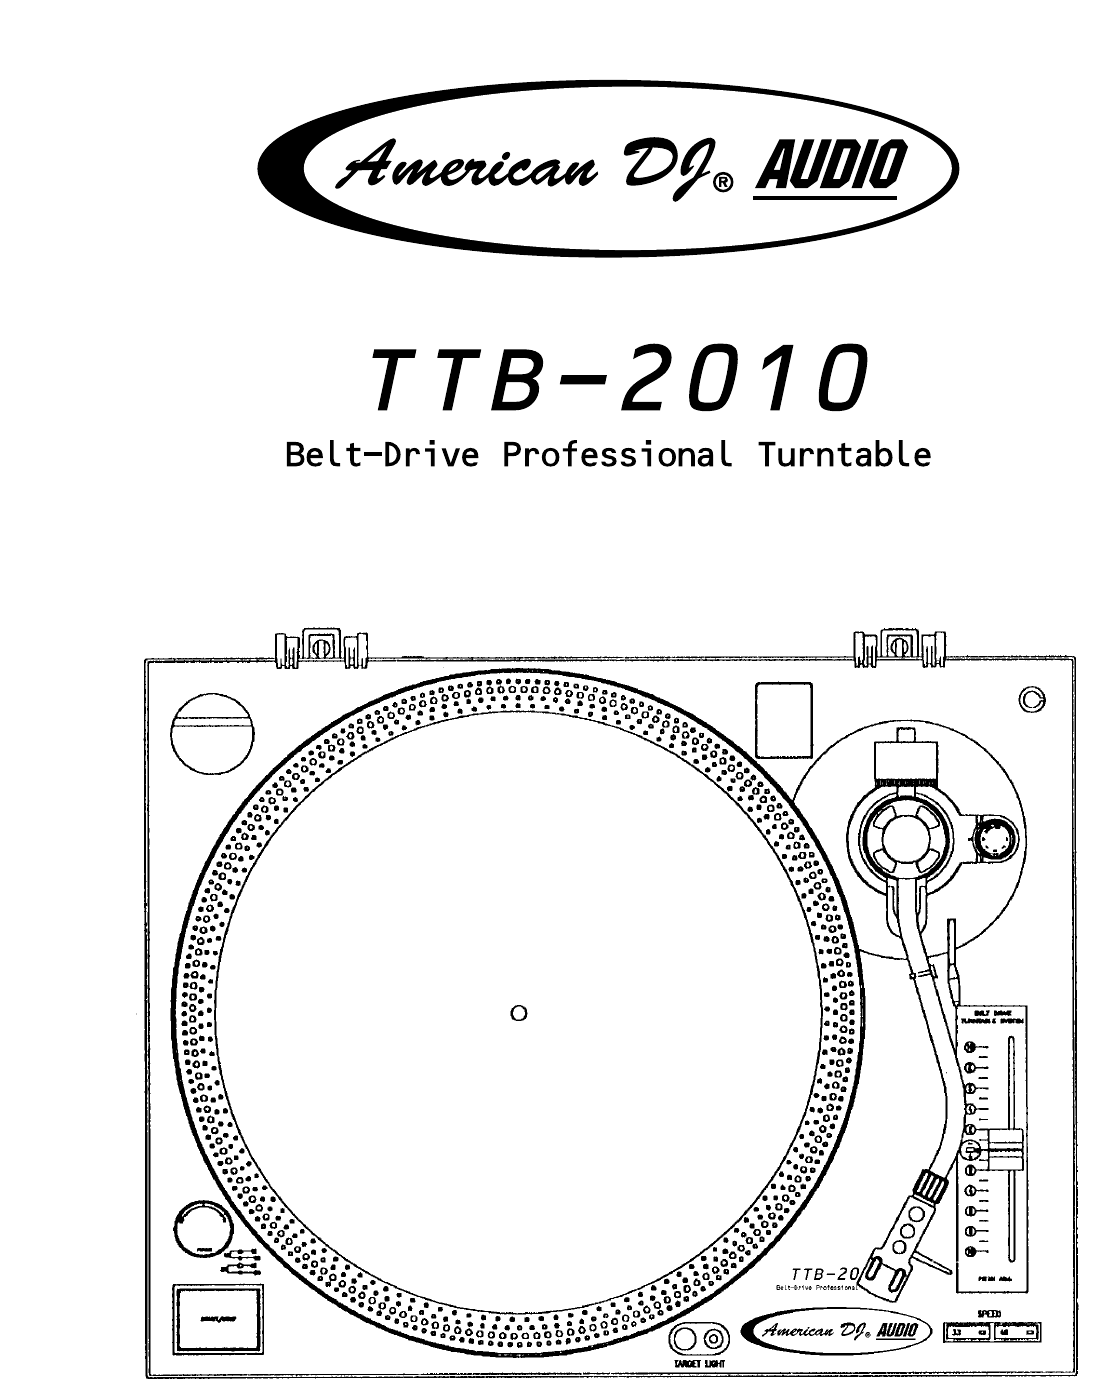 American Audio Turntable TTB-2010 User Guide